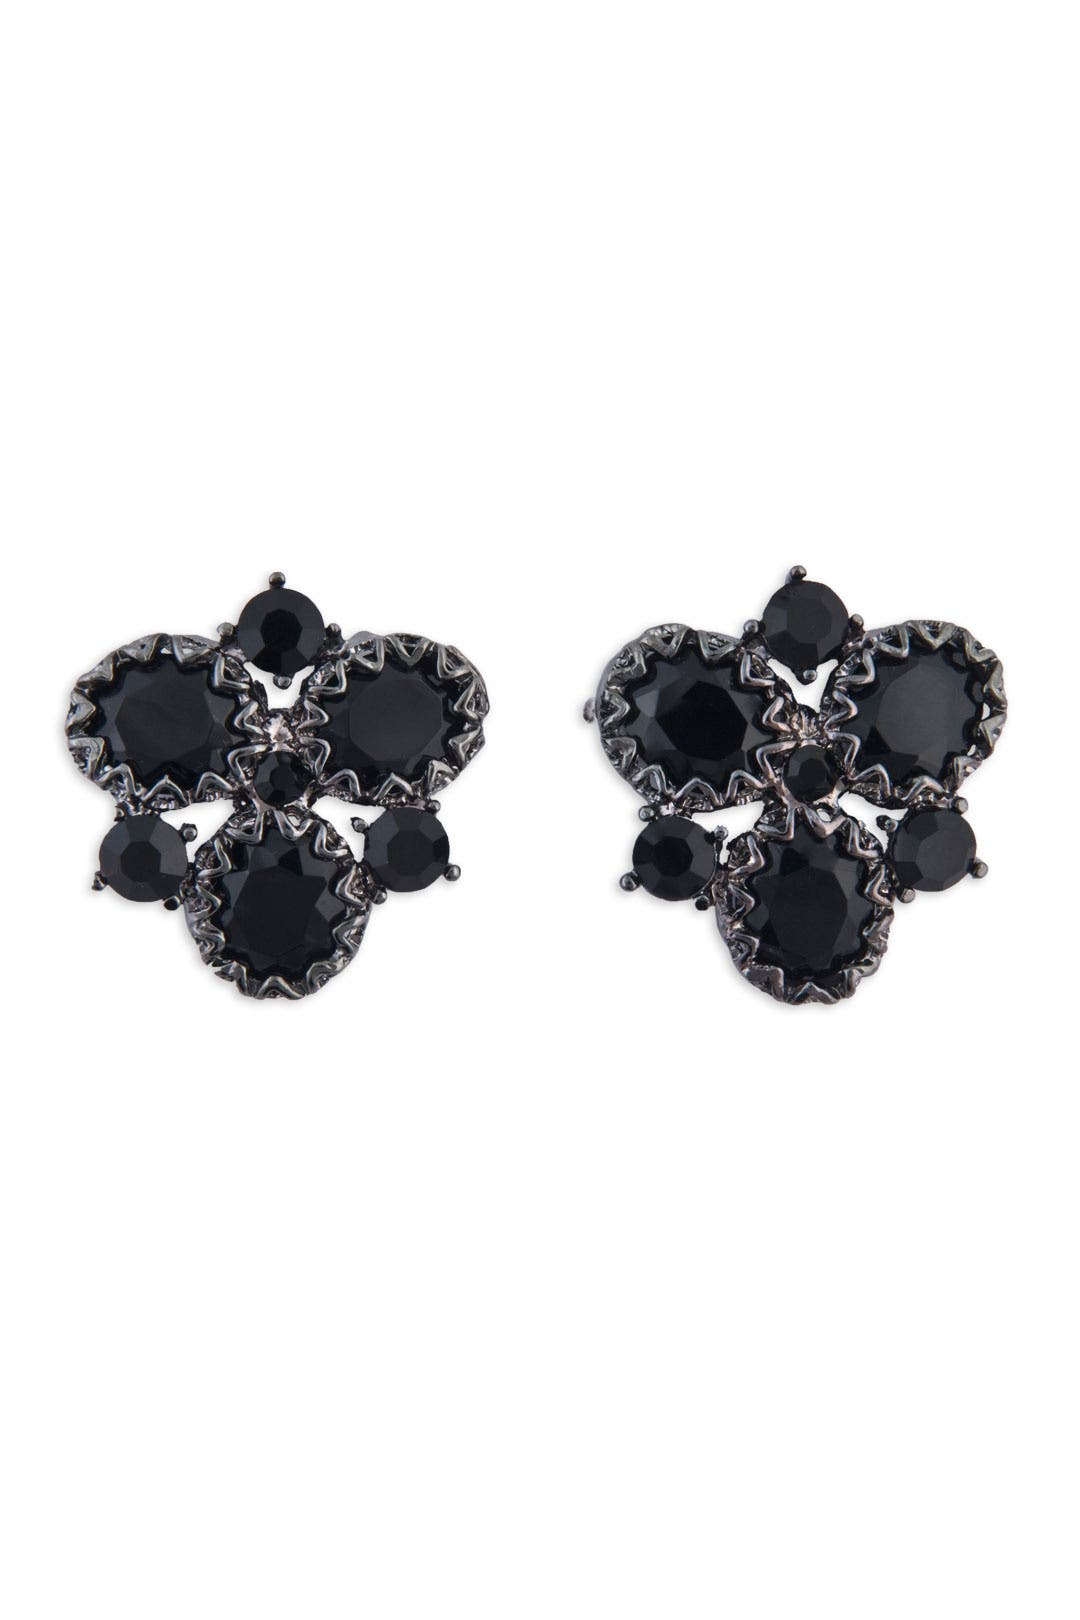 Black Crystal Cluster Earrings by Badgley Mischka Jewelry